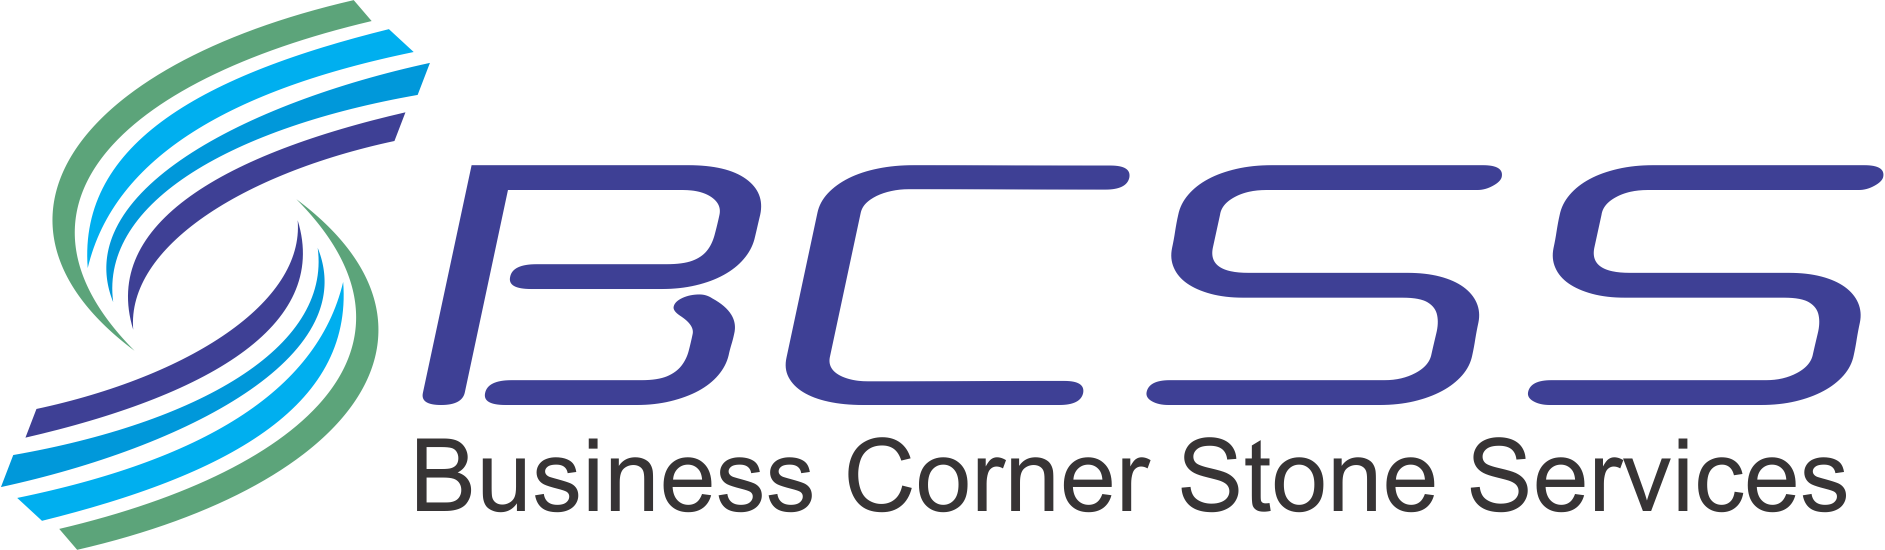 Business Corner Stone Services